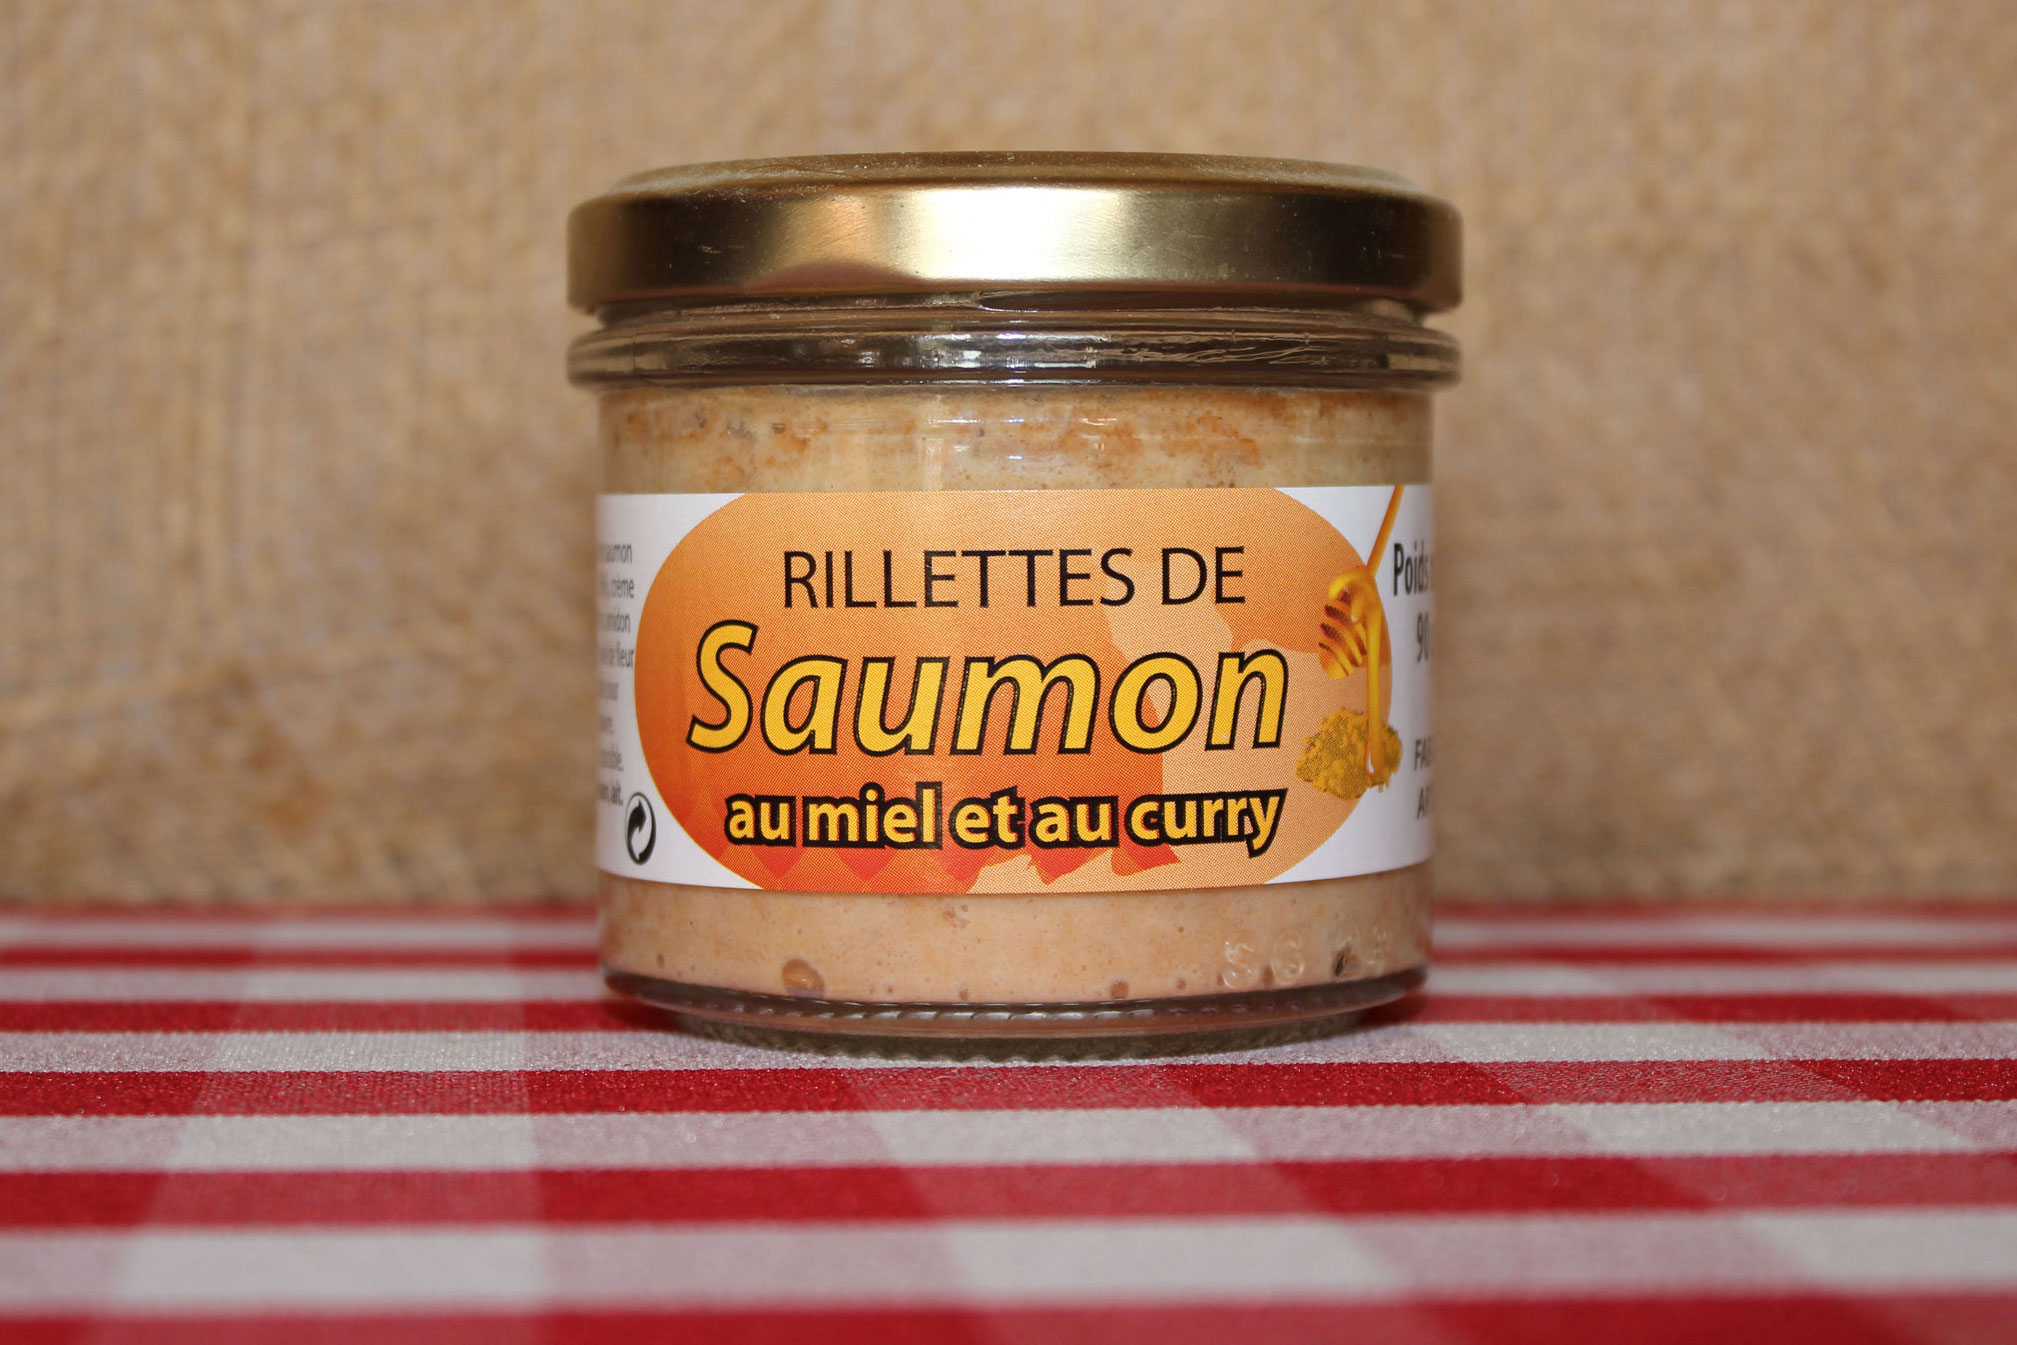 rillettes de saumon au miel et curry conserve maison saint lo. Black Bedroom Furniture Sets. Home Design Ideas